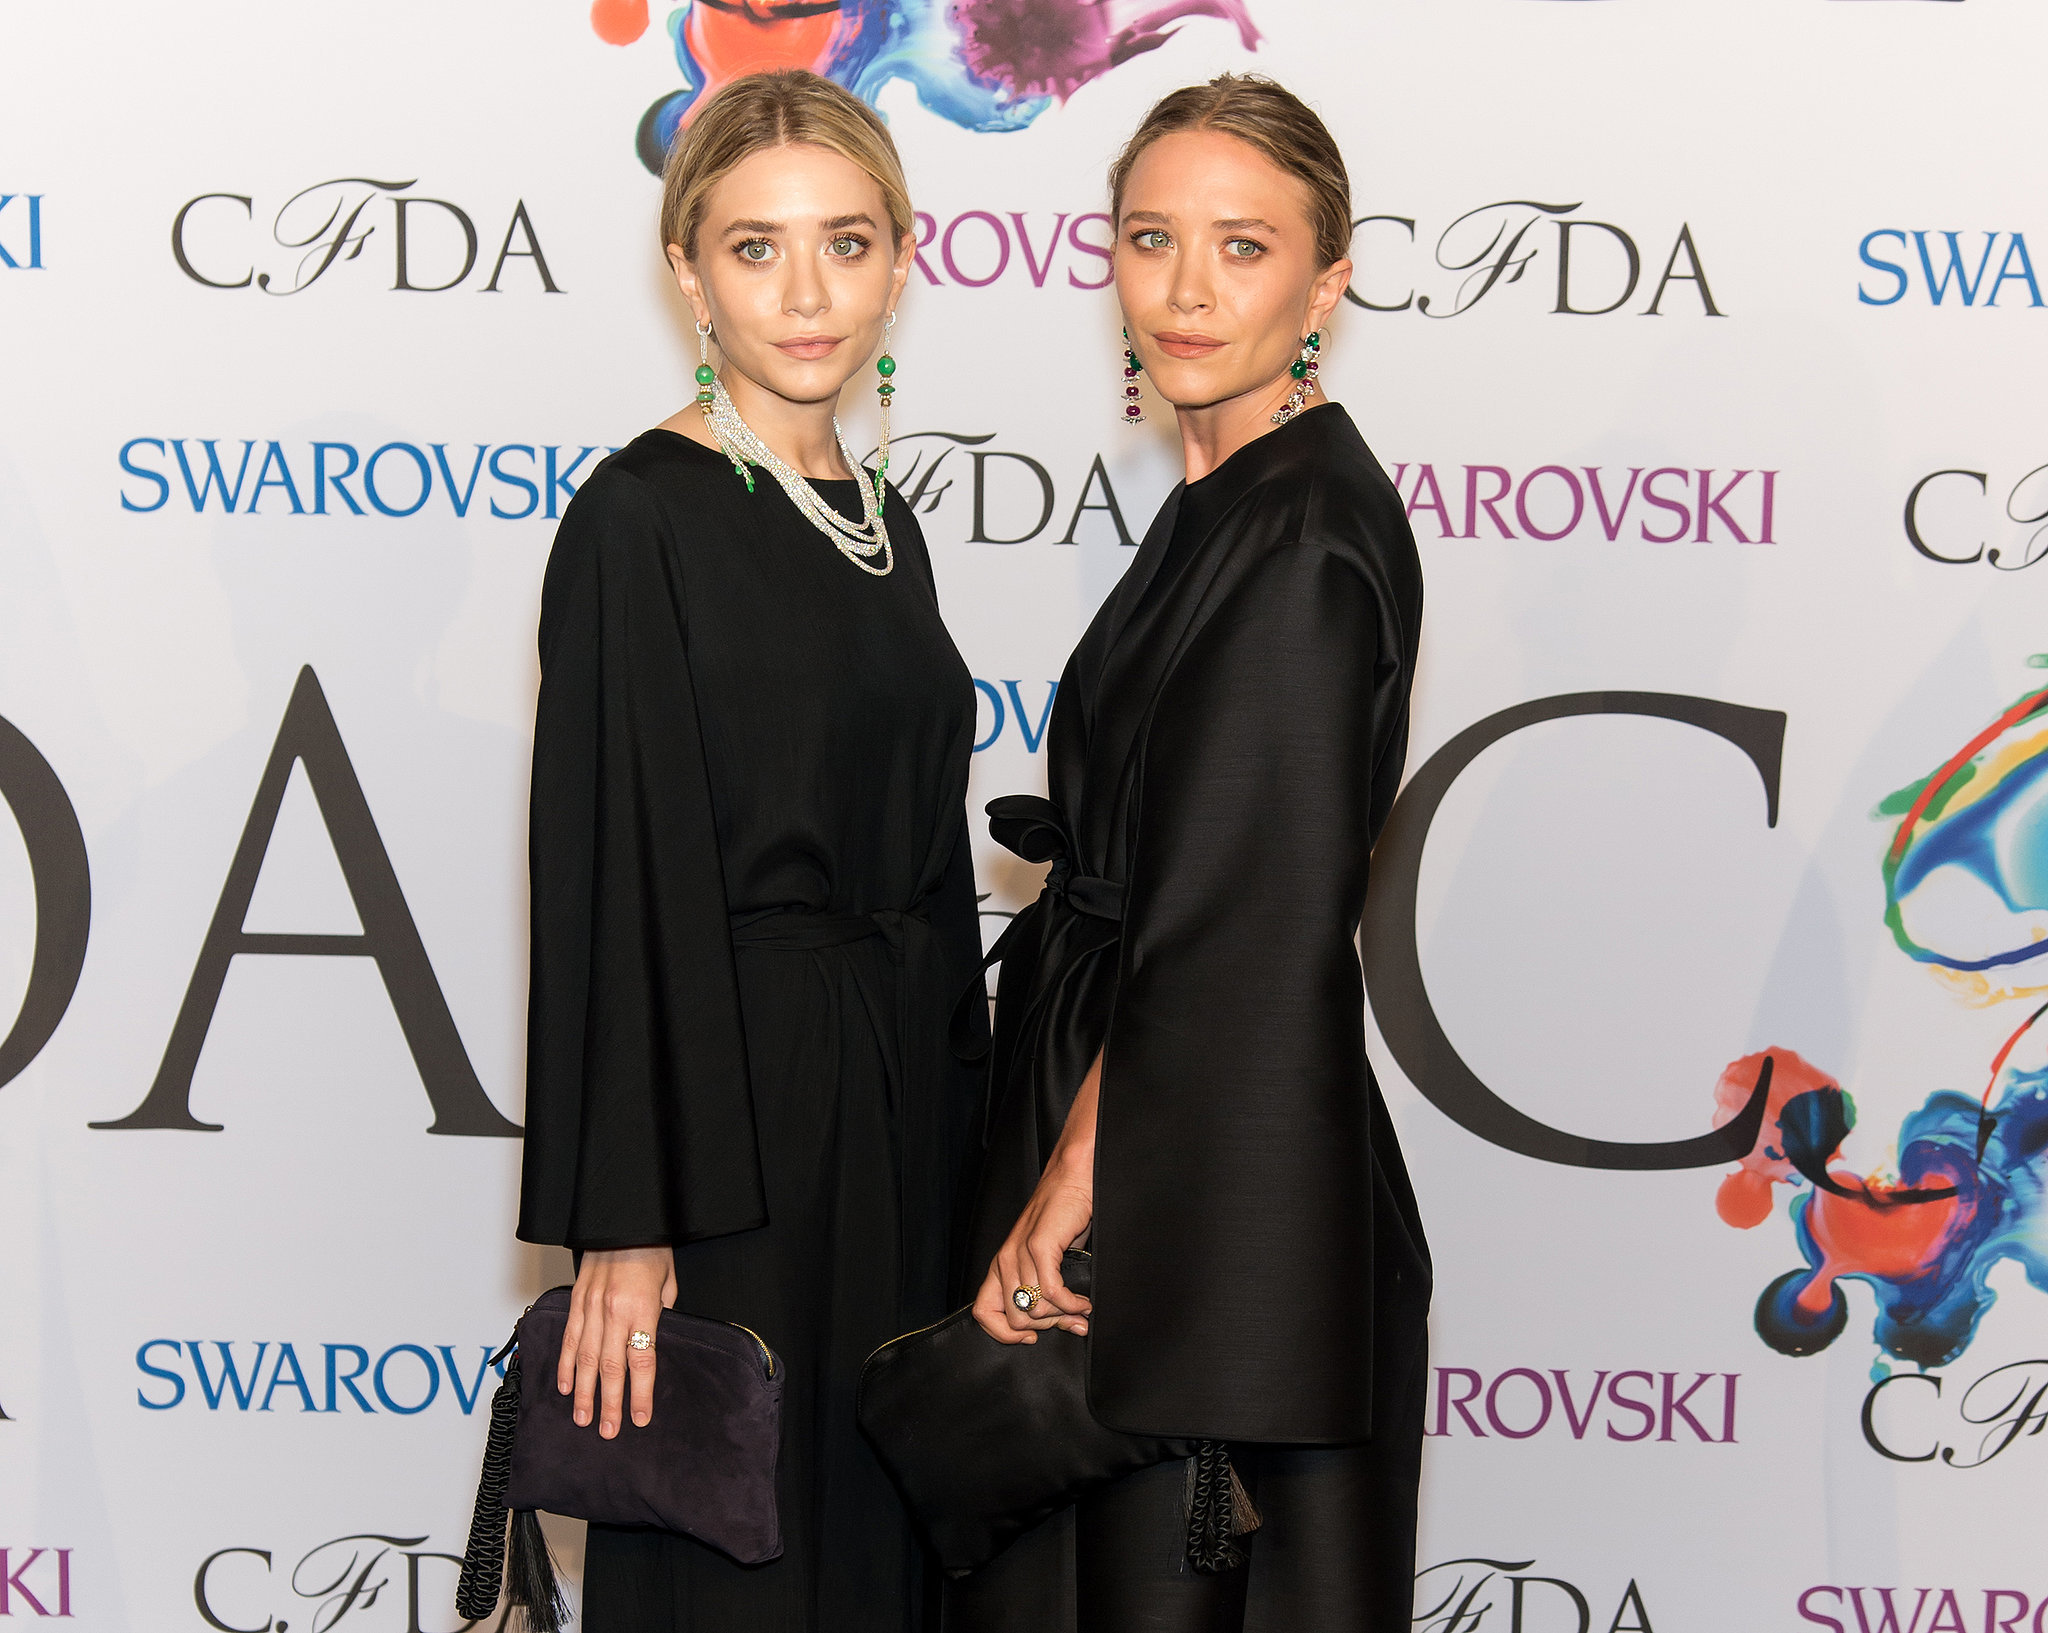 john-stamos-heartbroken-olsen-twins-say-no-to-spin-off-0523-3